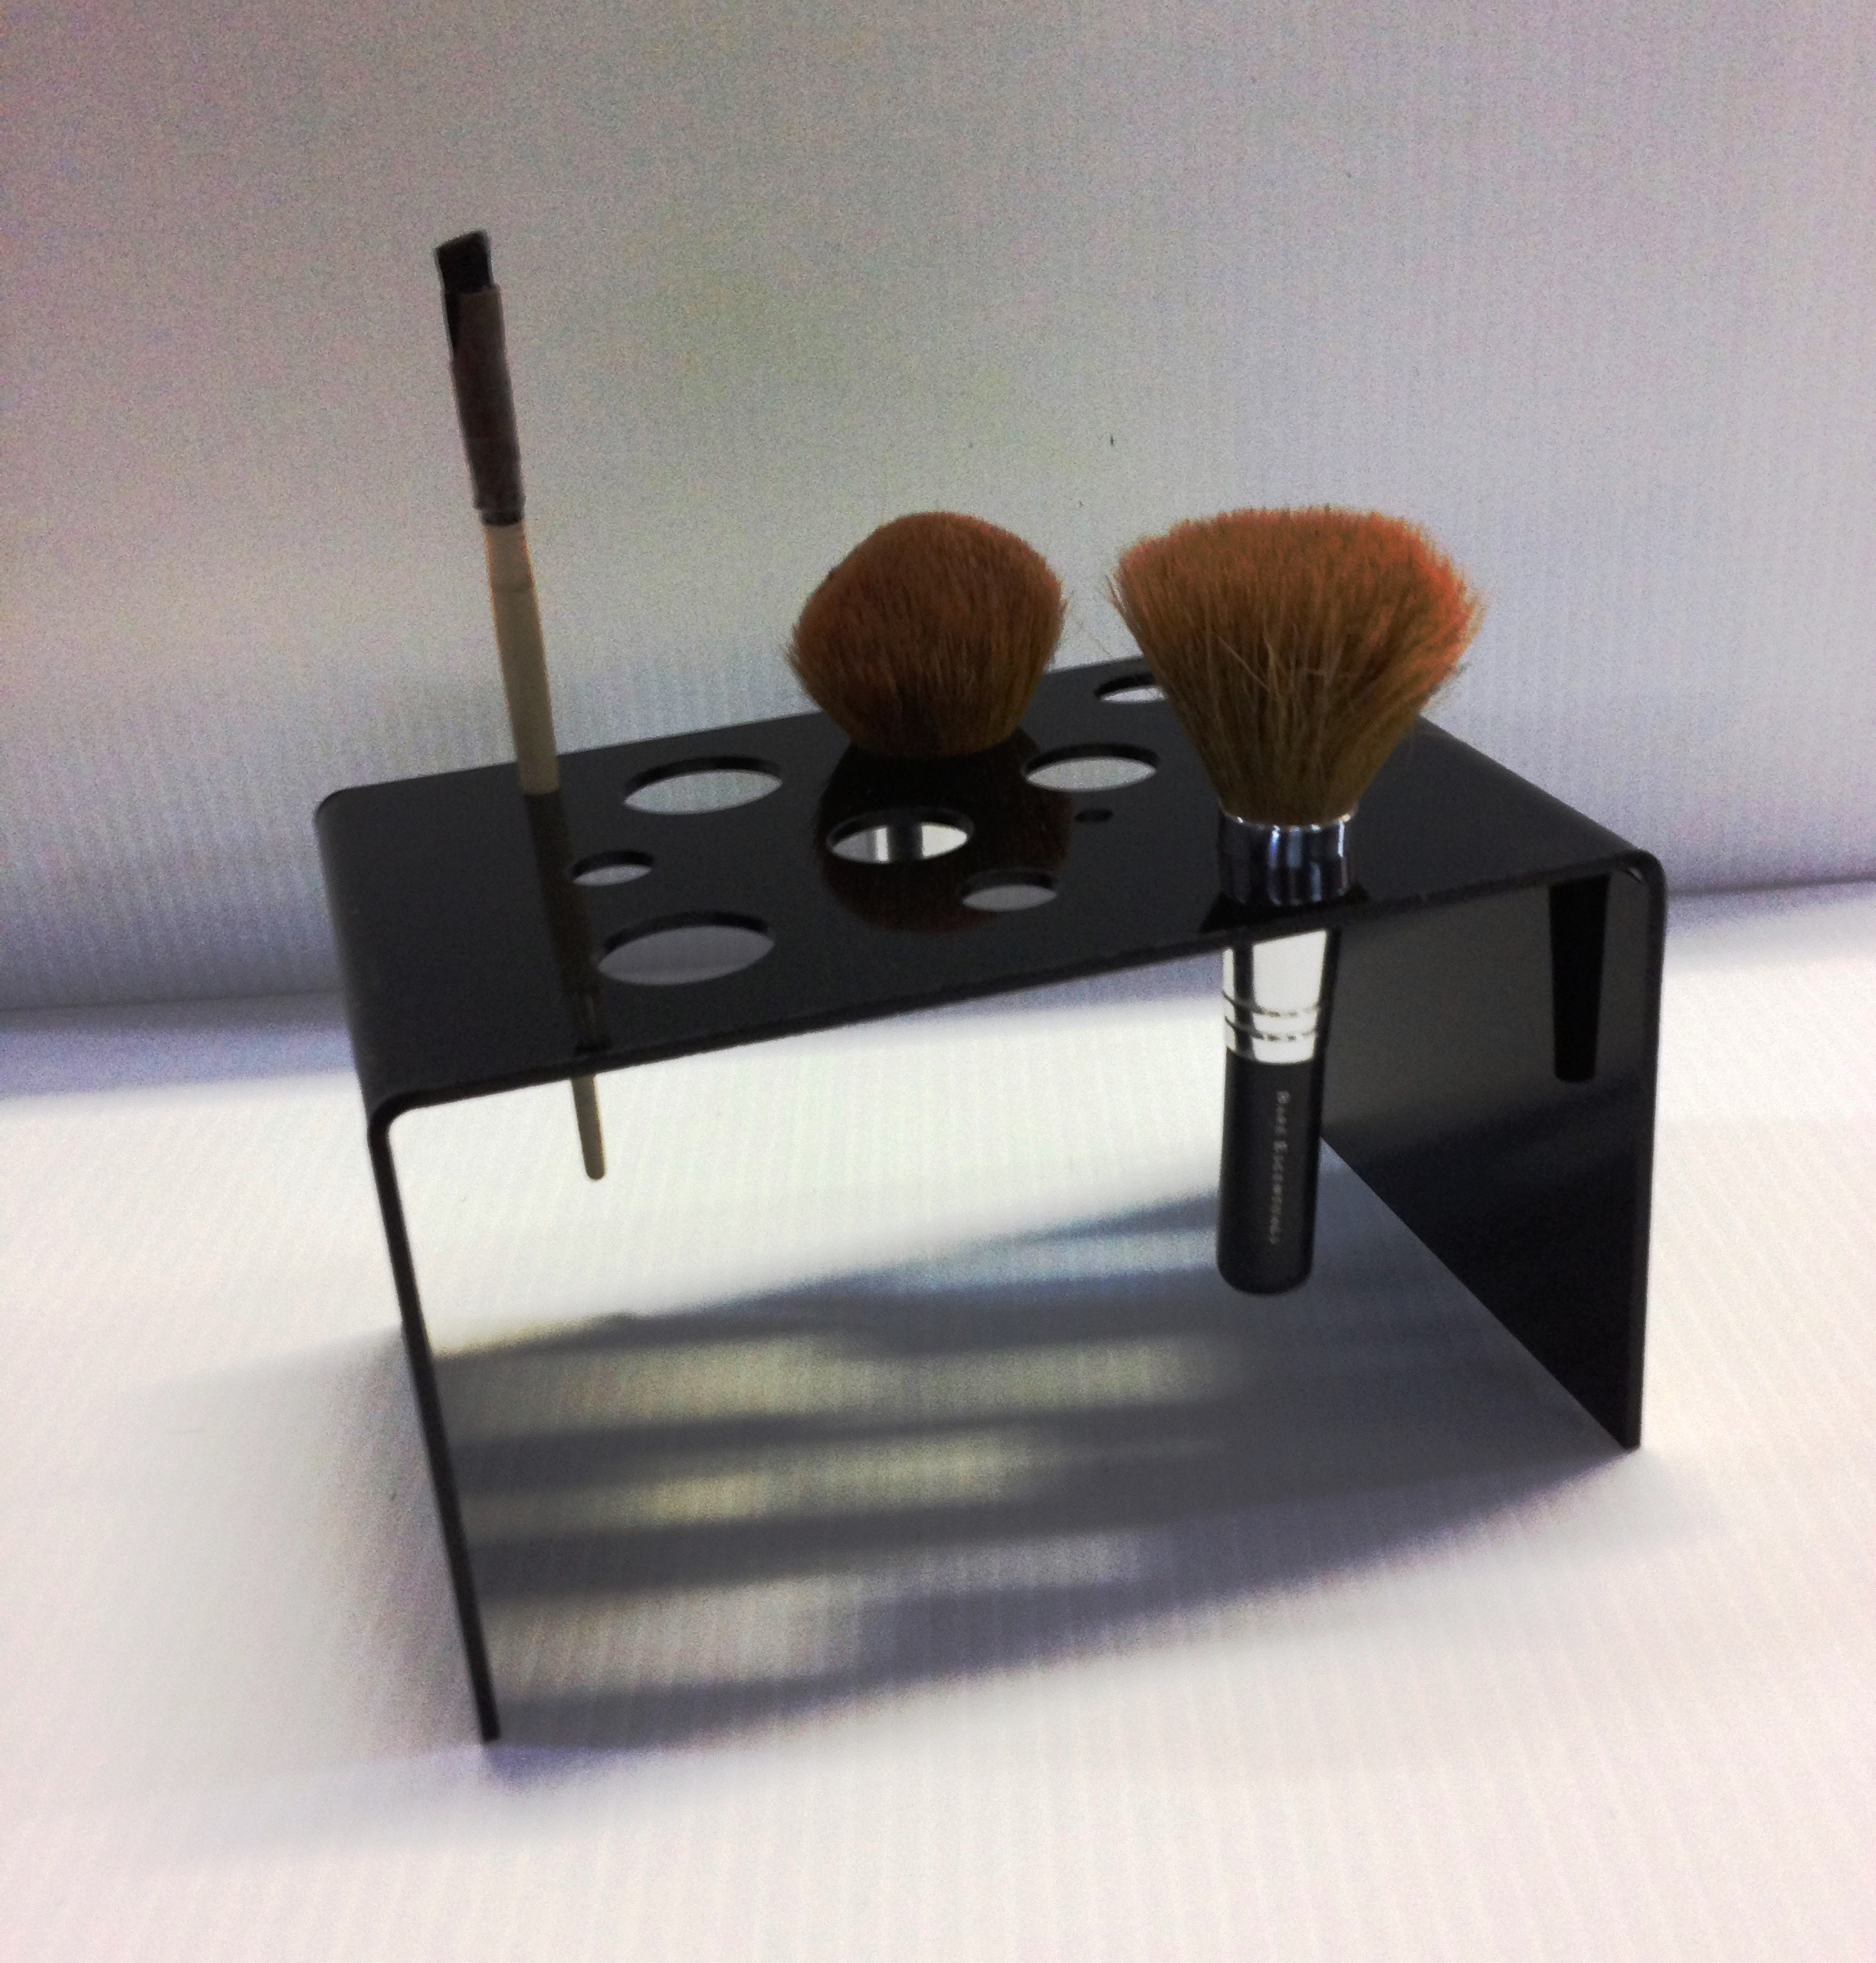 brush holder makeup brush holder cosmetic brish display united products llc. Black Bedroom Furniture Sets. Home Design Ideas